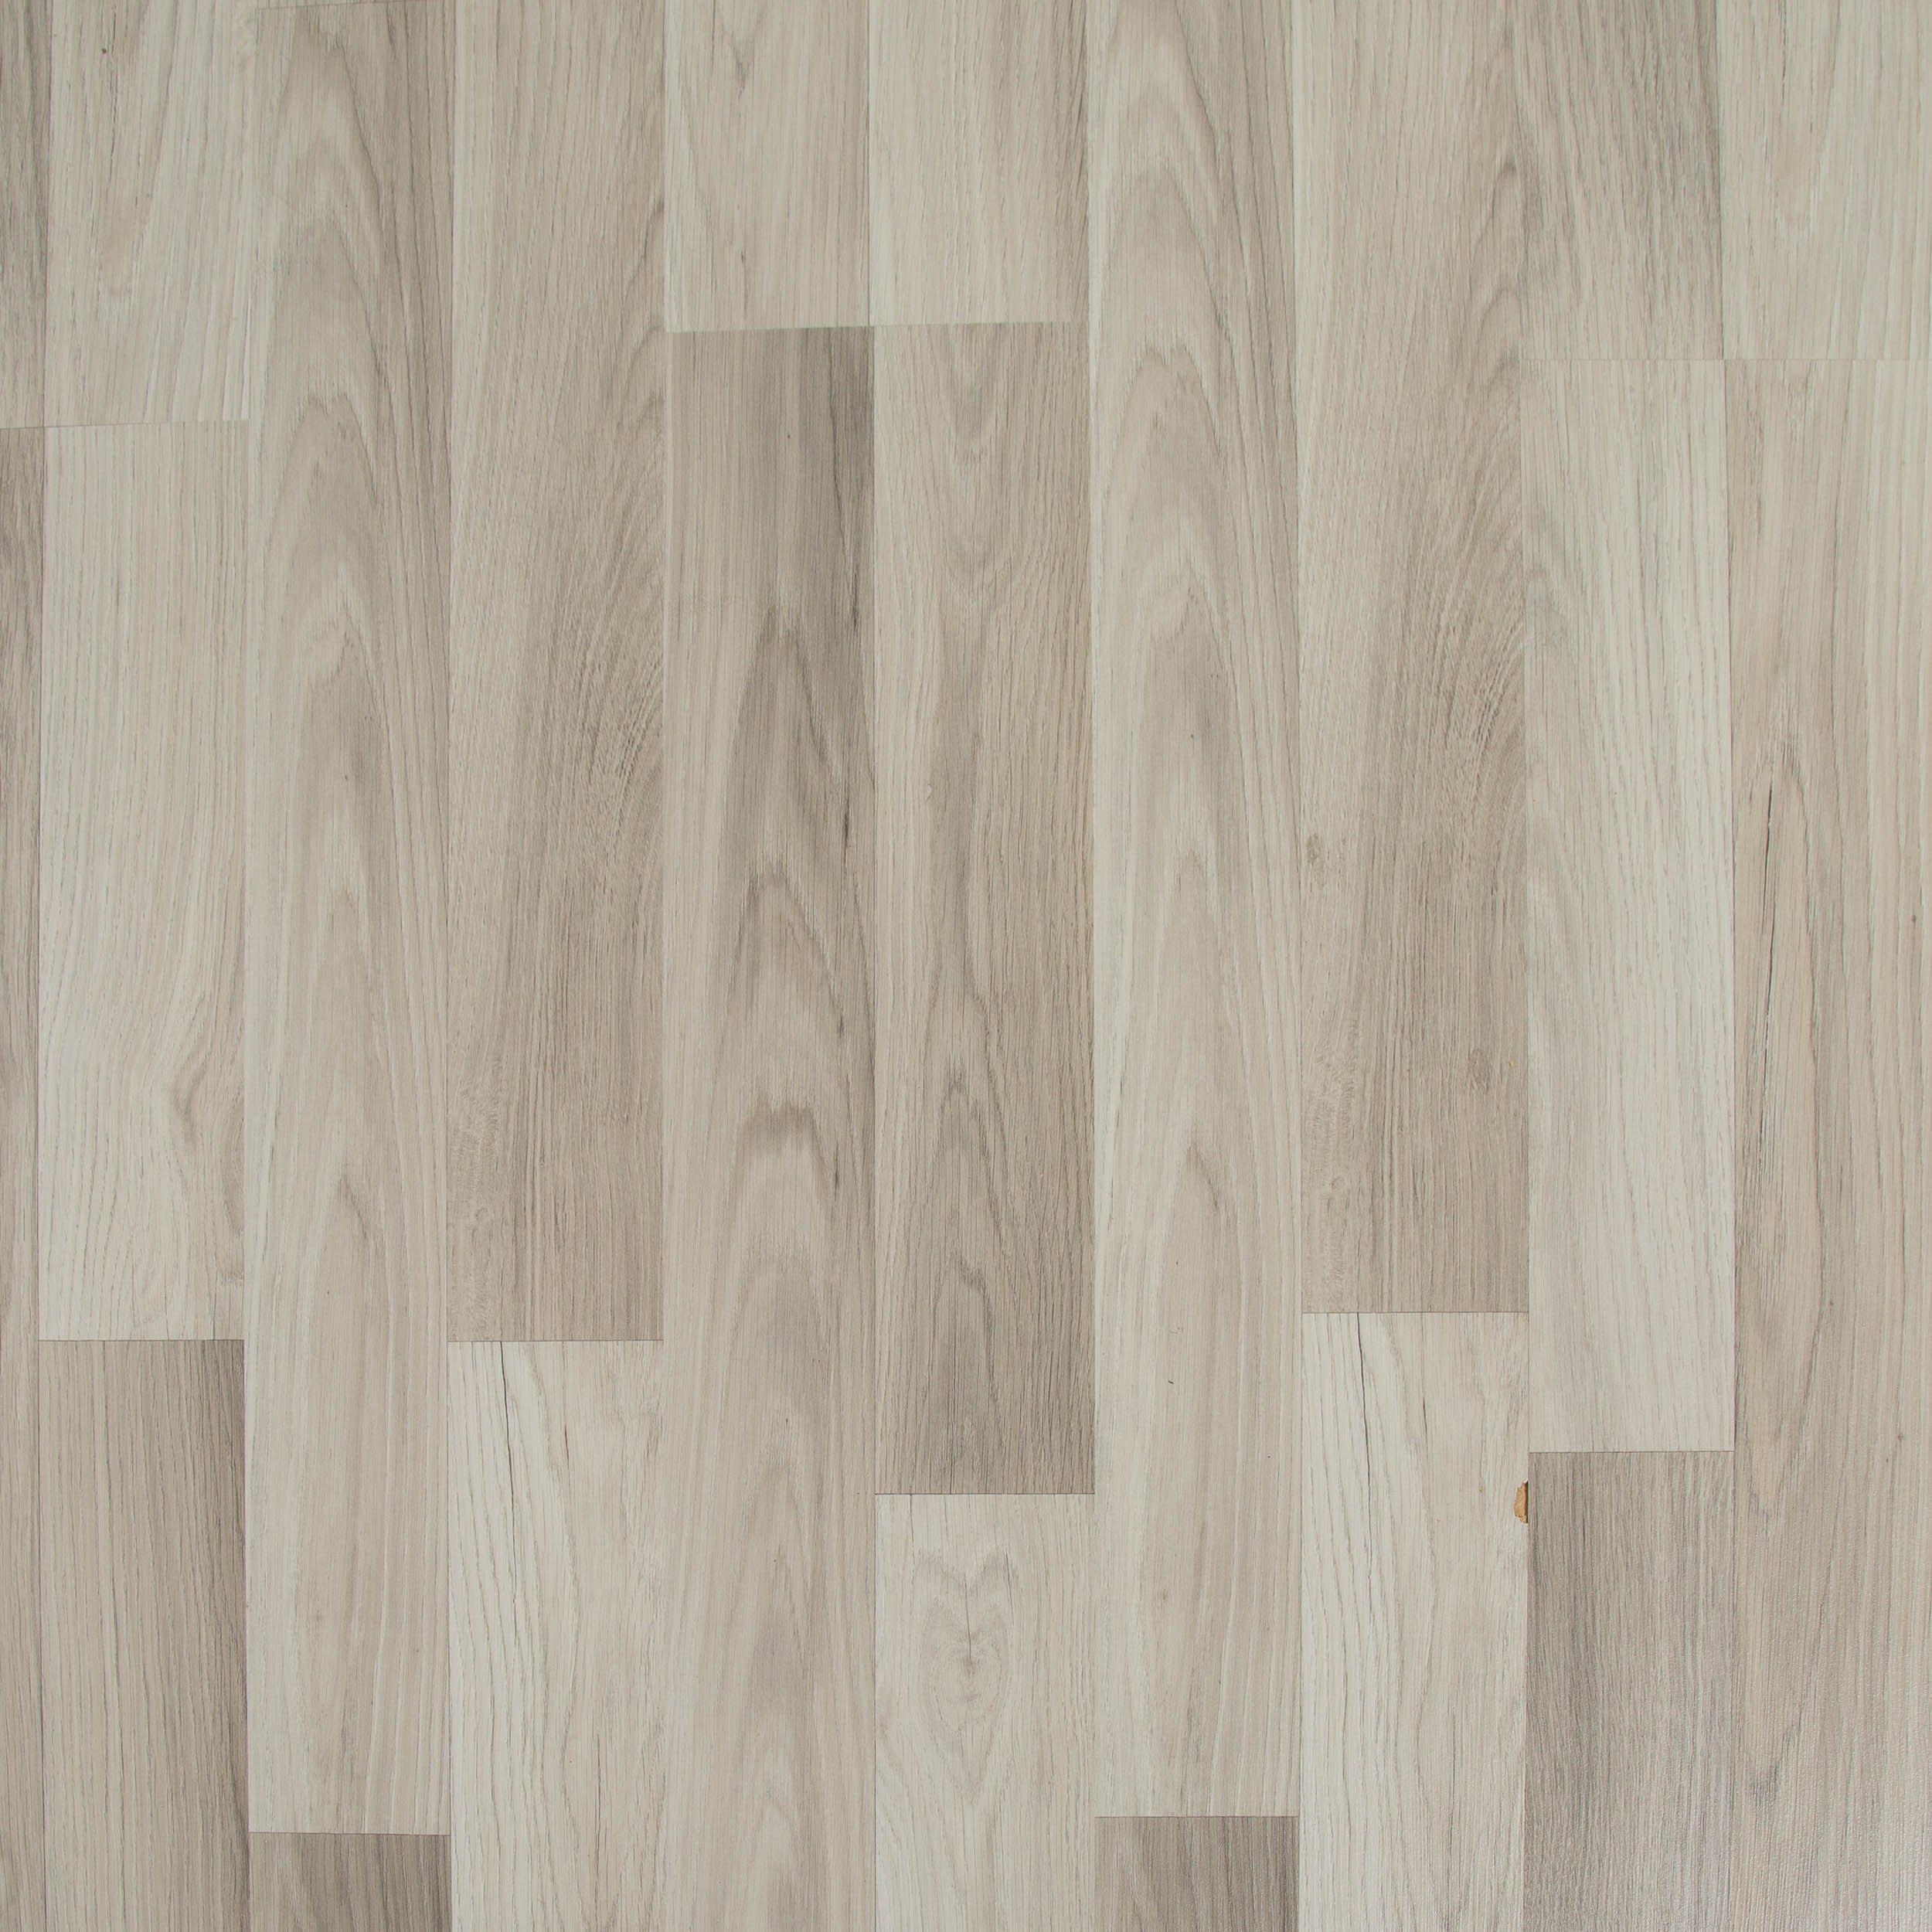 Fawn Oak 2 Strip Matte Laminate 8mm 100493055 Floor And Decor